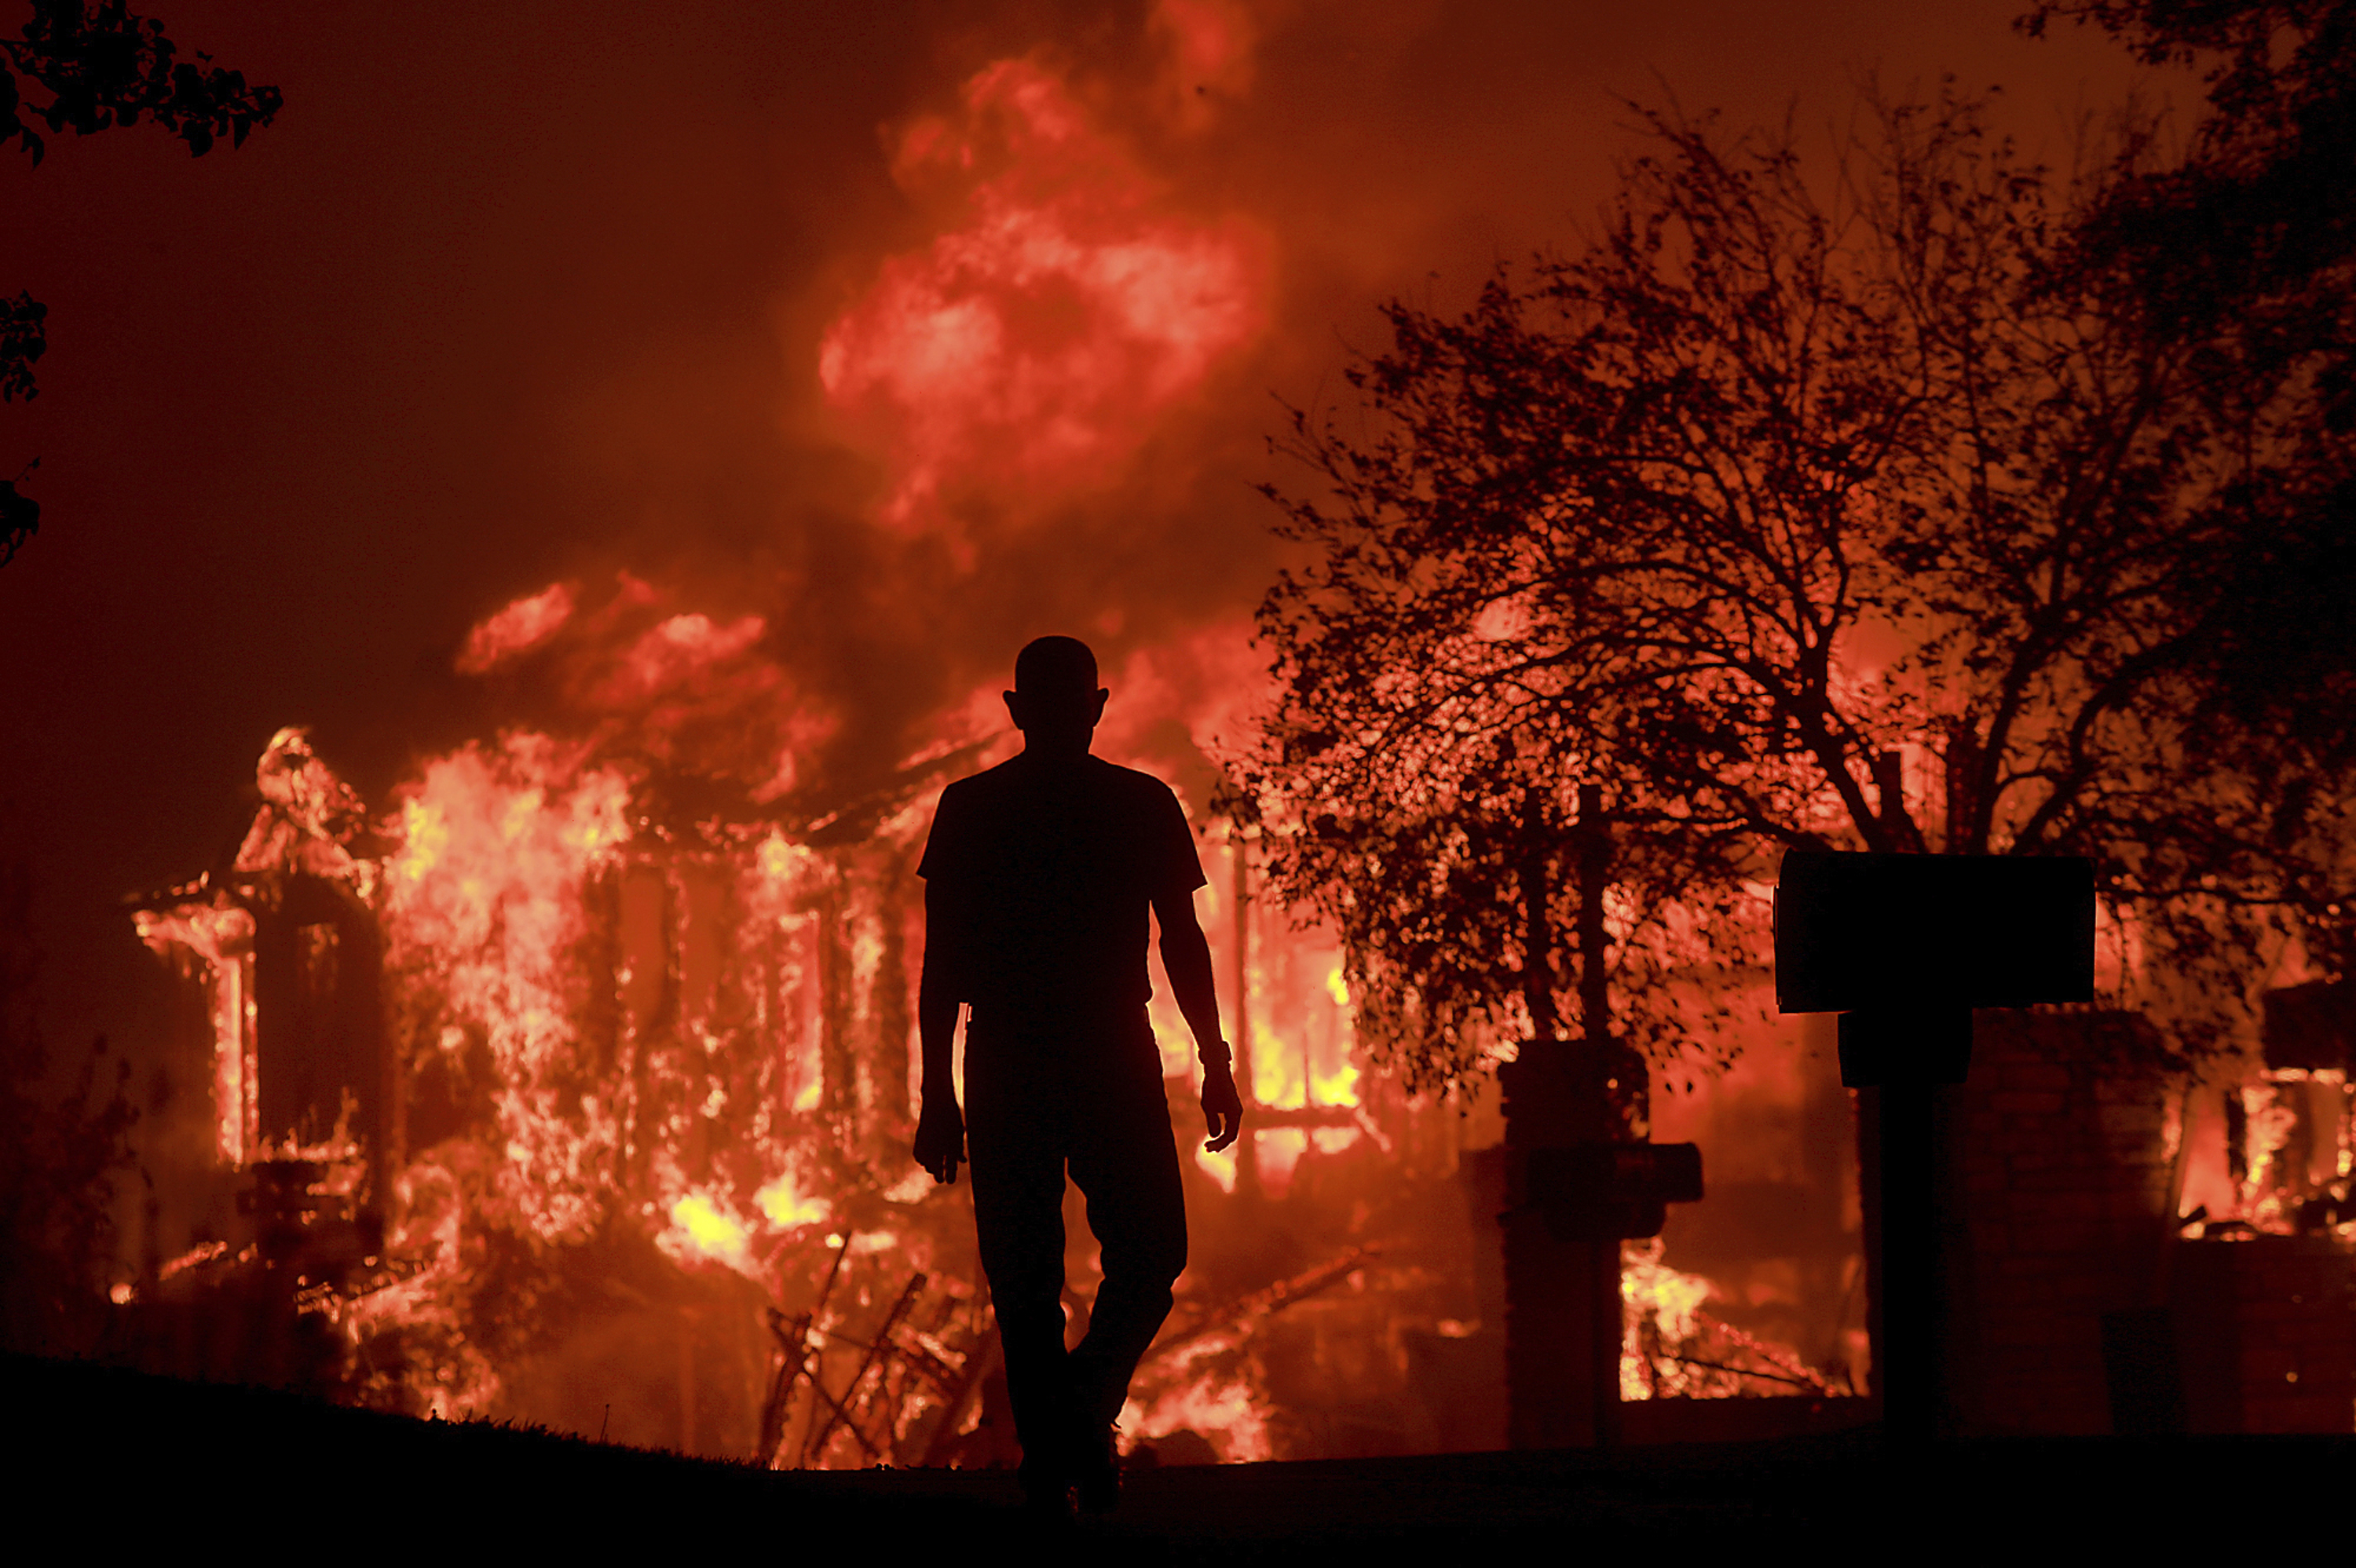 FILE - In this Oct. 9, 2017 file photo, Jim Stites watches part of his neighborhood burn in Fountain Grove, Calif. California's insurance commissioner said Tuesday, Oct. 31, 2017 that losses from a series of destructive wildfires now exceed $3.3 billion. Commissioner Dave Jones said Tuesday, Oct. 31, 2017, that the figure represents claims for homes and businesses insured by 15 major insurers. (Kent Porter/The Press Democrat via AP, File)